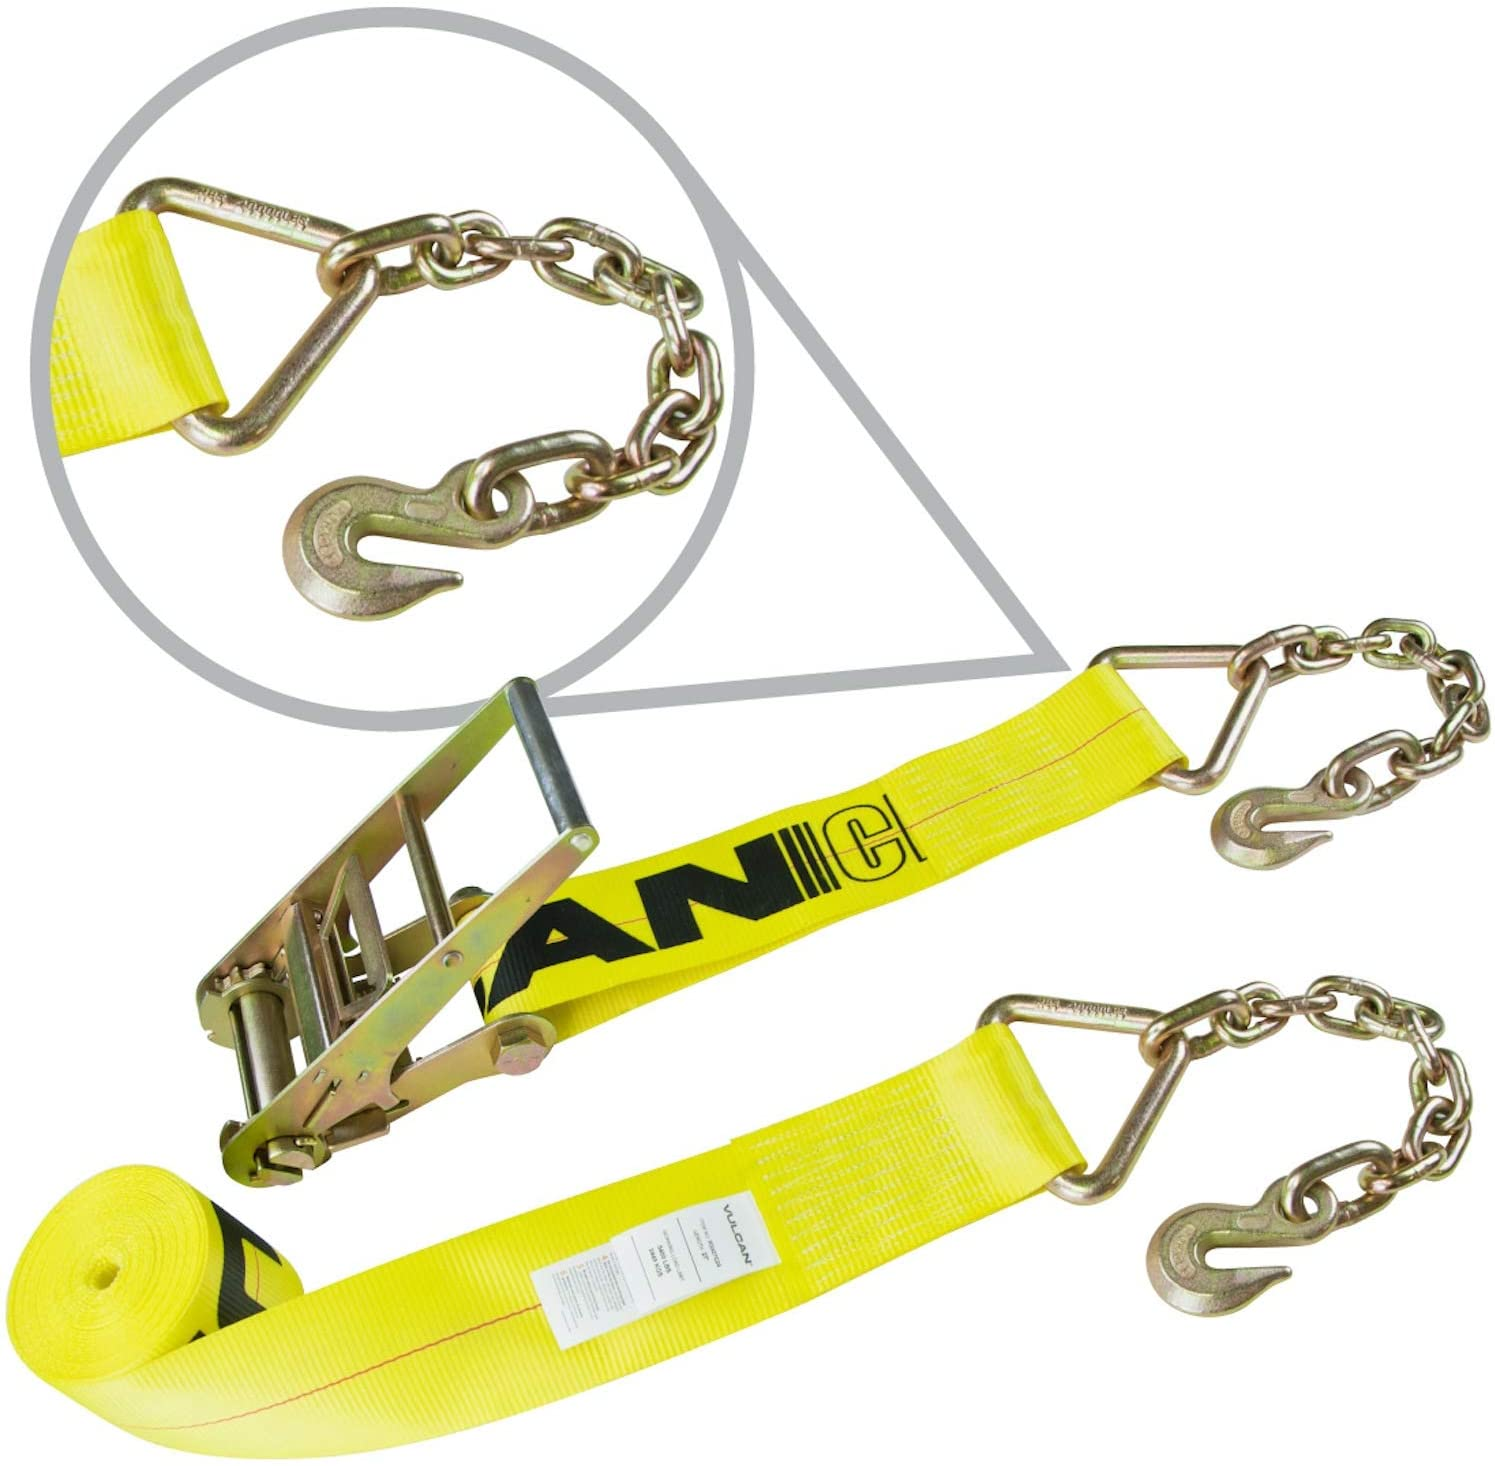 VULCAN Ratchet Strap with Chain Anchors - 4 Inch x 30 Foot - Classic Yellow - 5,400 Pound Safe Working Load